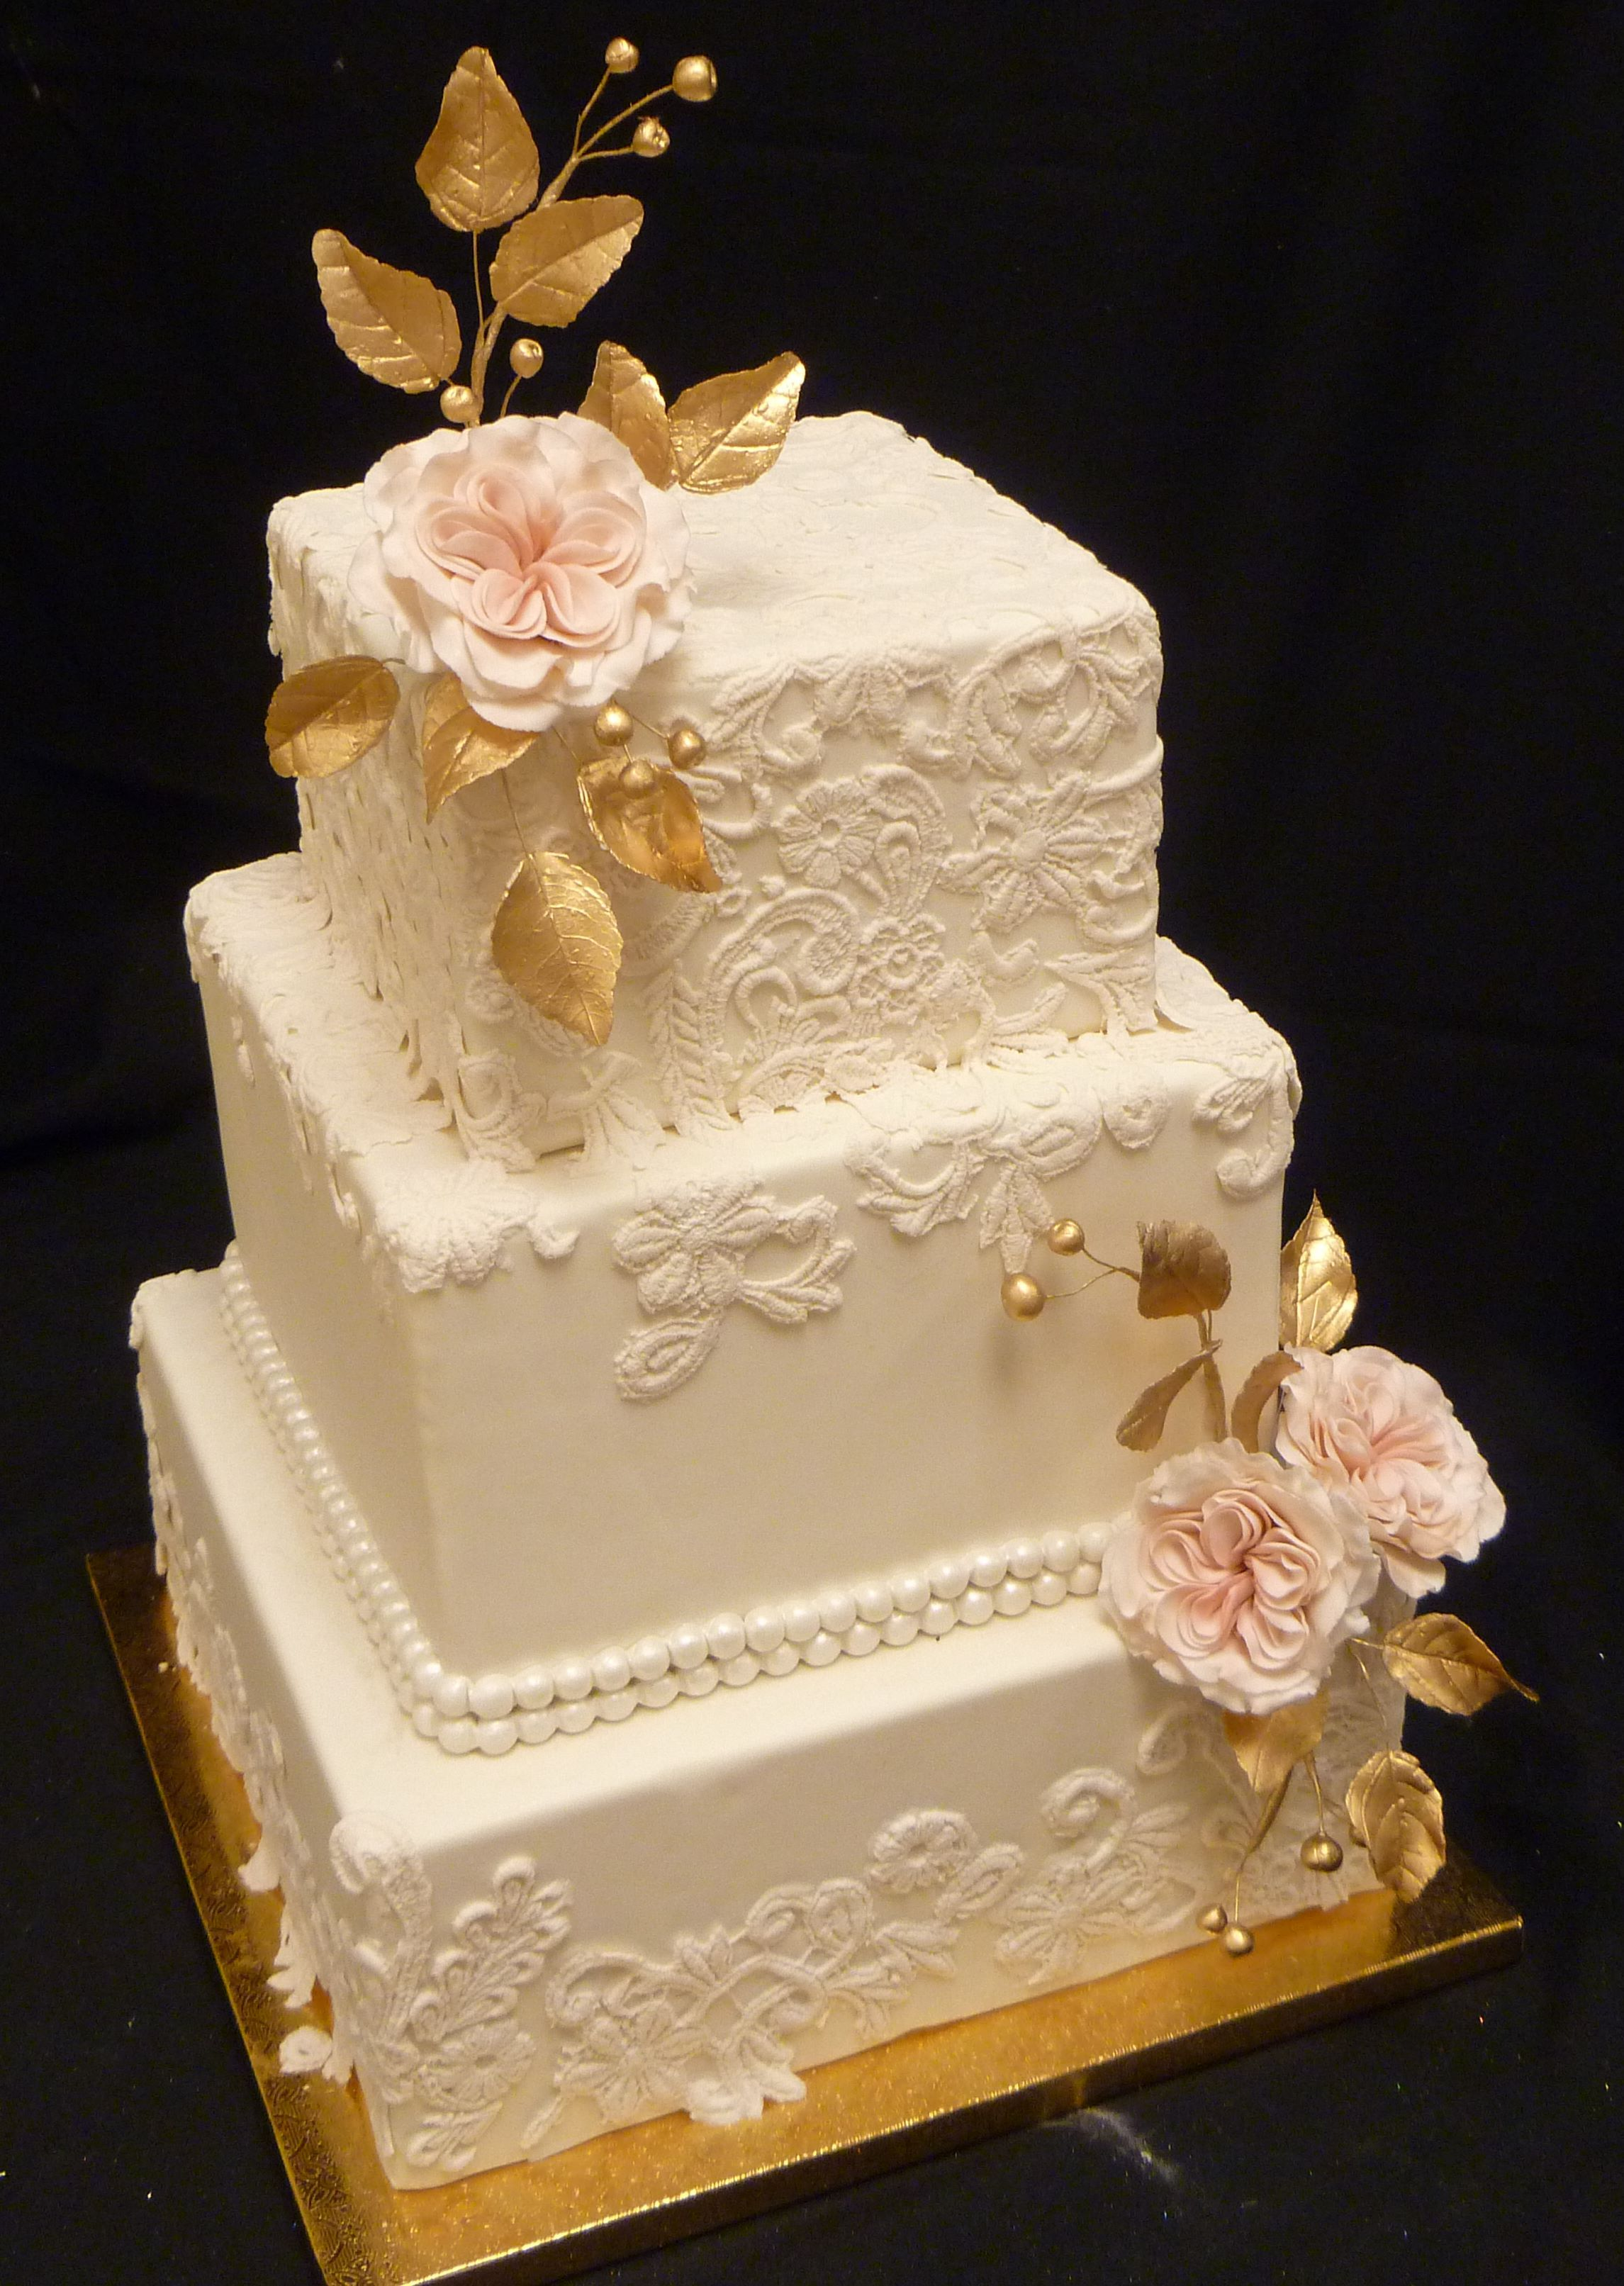 Elegant Gold And Lace Square Wedding Cake